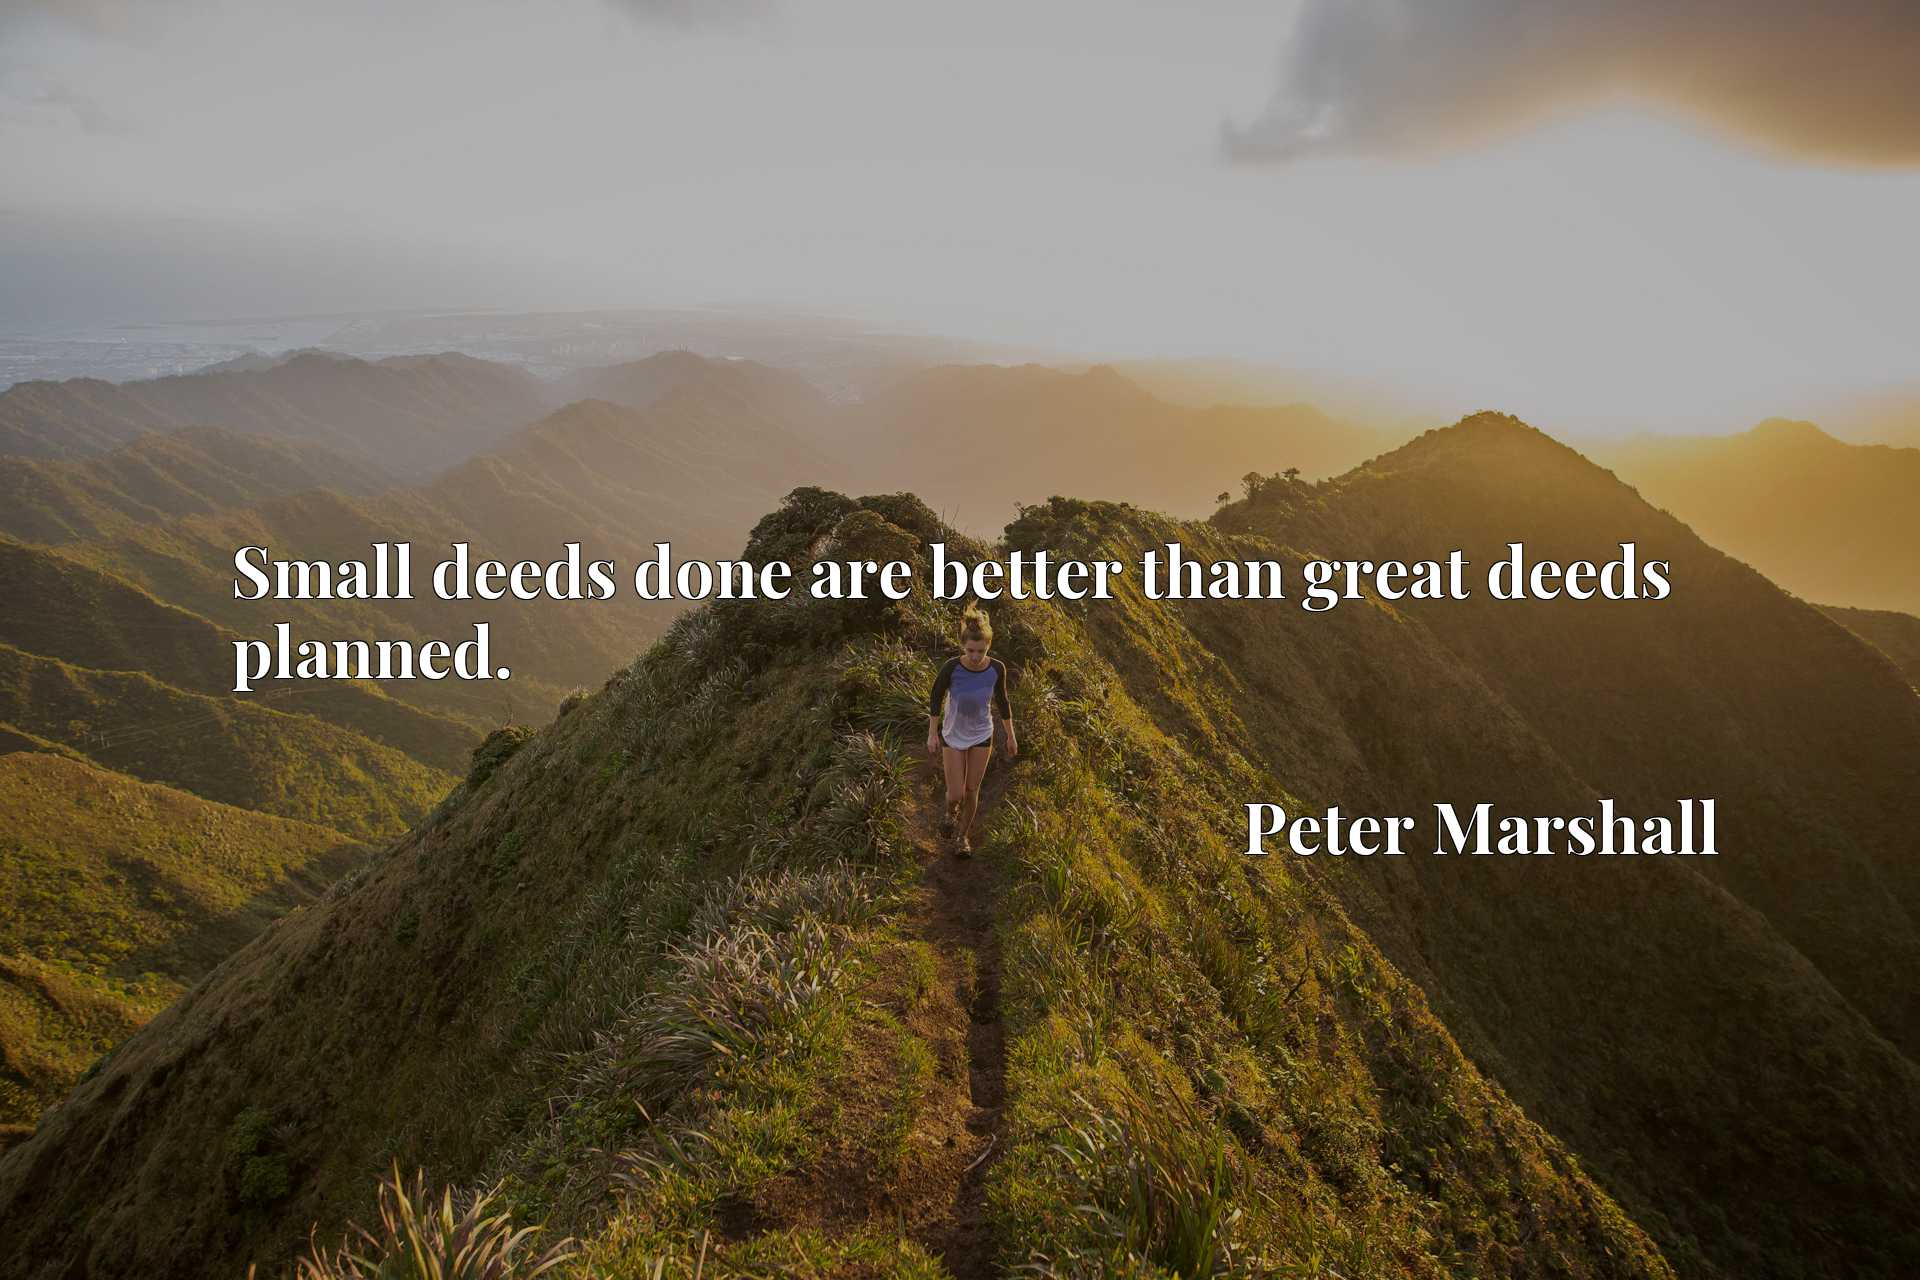 Small deeds done are better than great deeds planned.